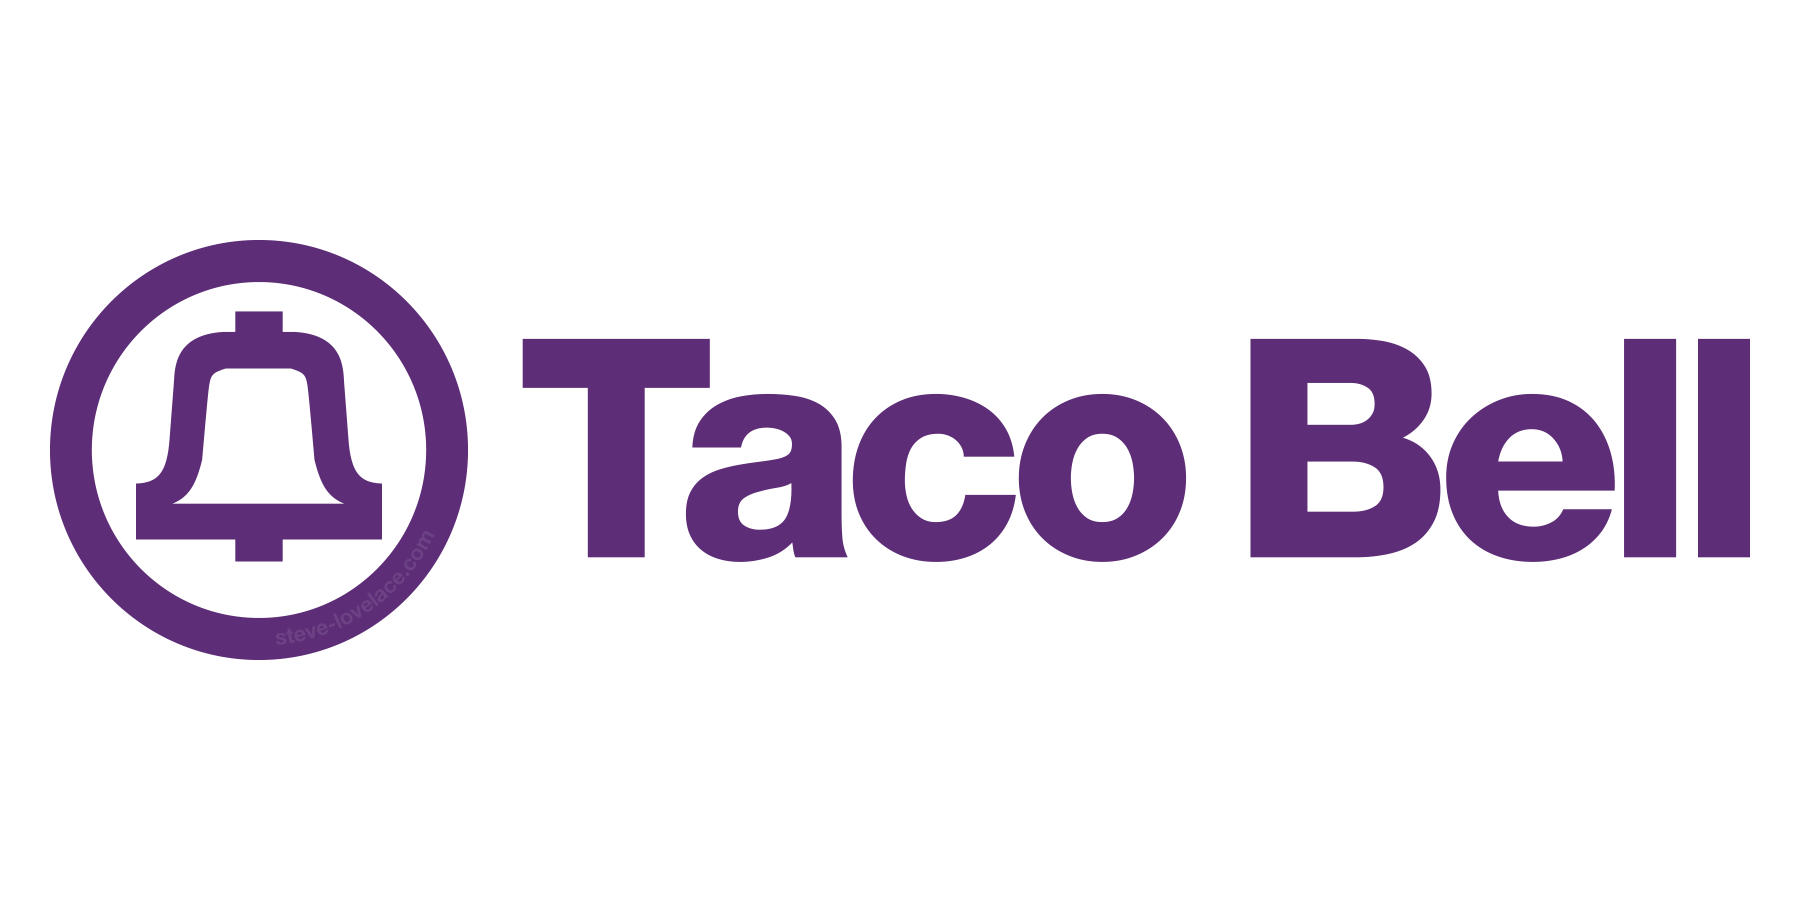 Taco bell new logo png. Defunct designs the system